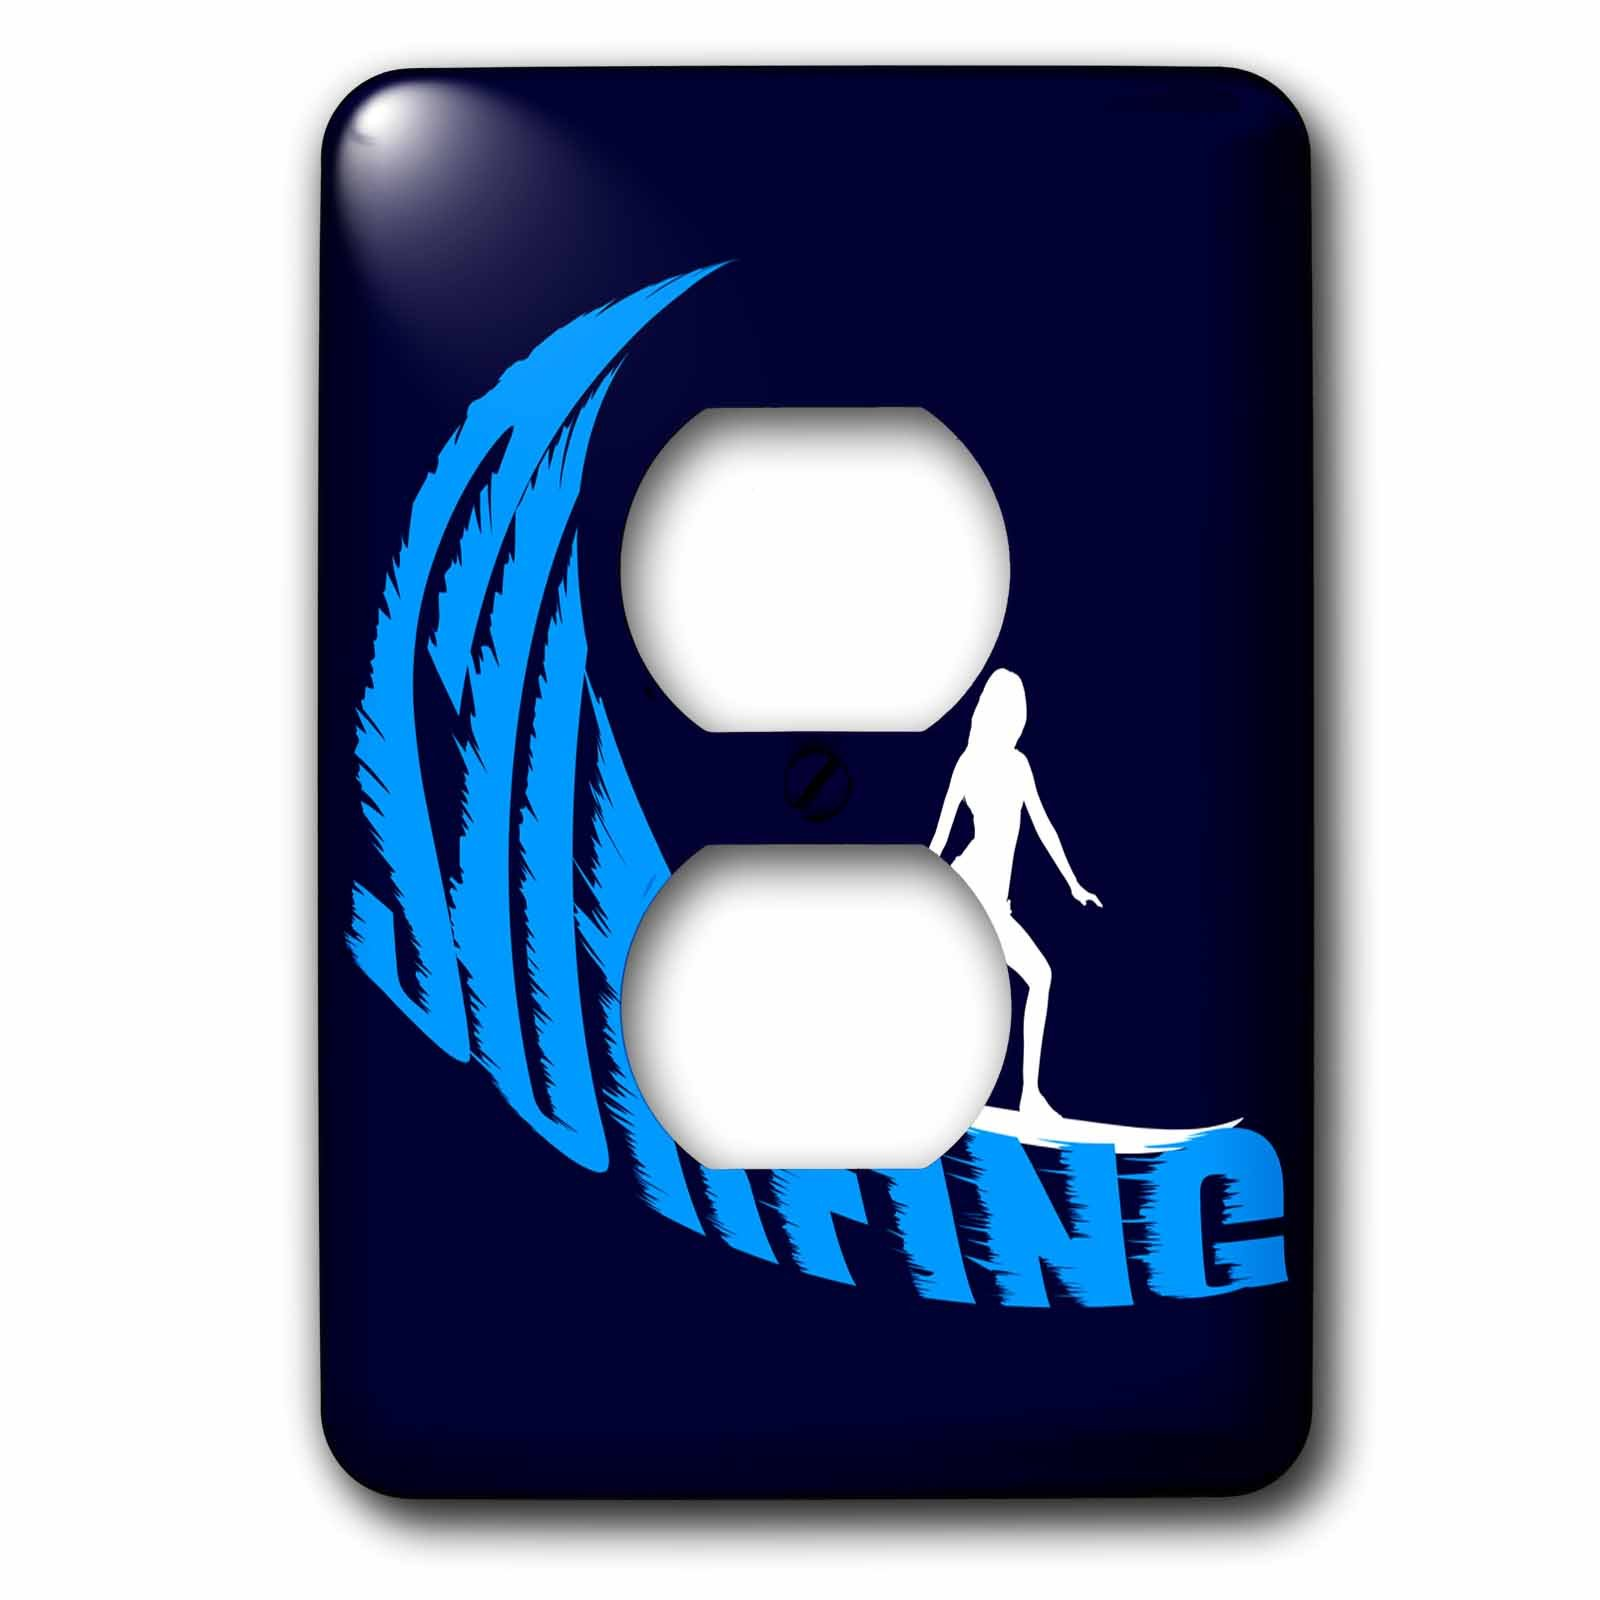 3dRose Alexis Design - Beach, Sea, Surf - Woman surfer, blue wave, text surfing, dark navy background - Light Switch Covers - 2 plug outlet cover (lsp_271760_6)